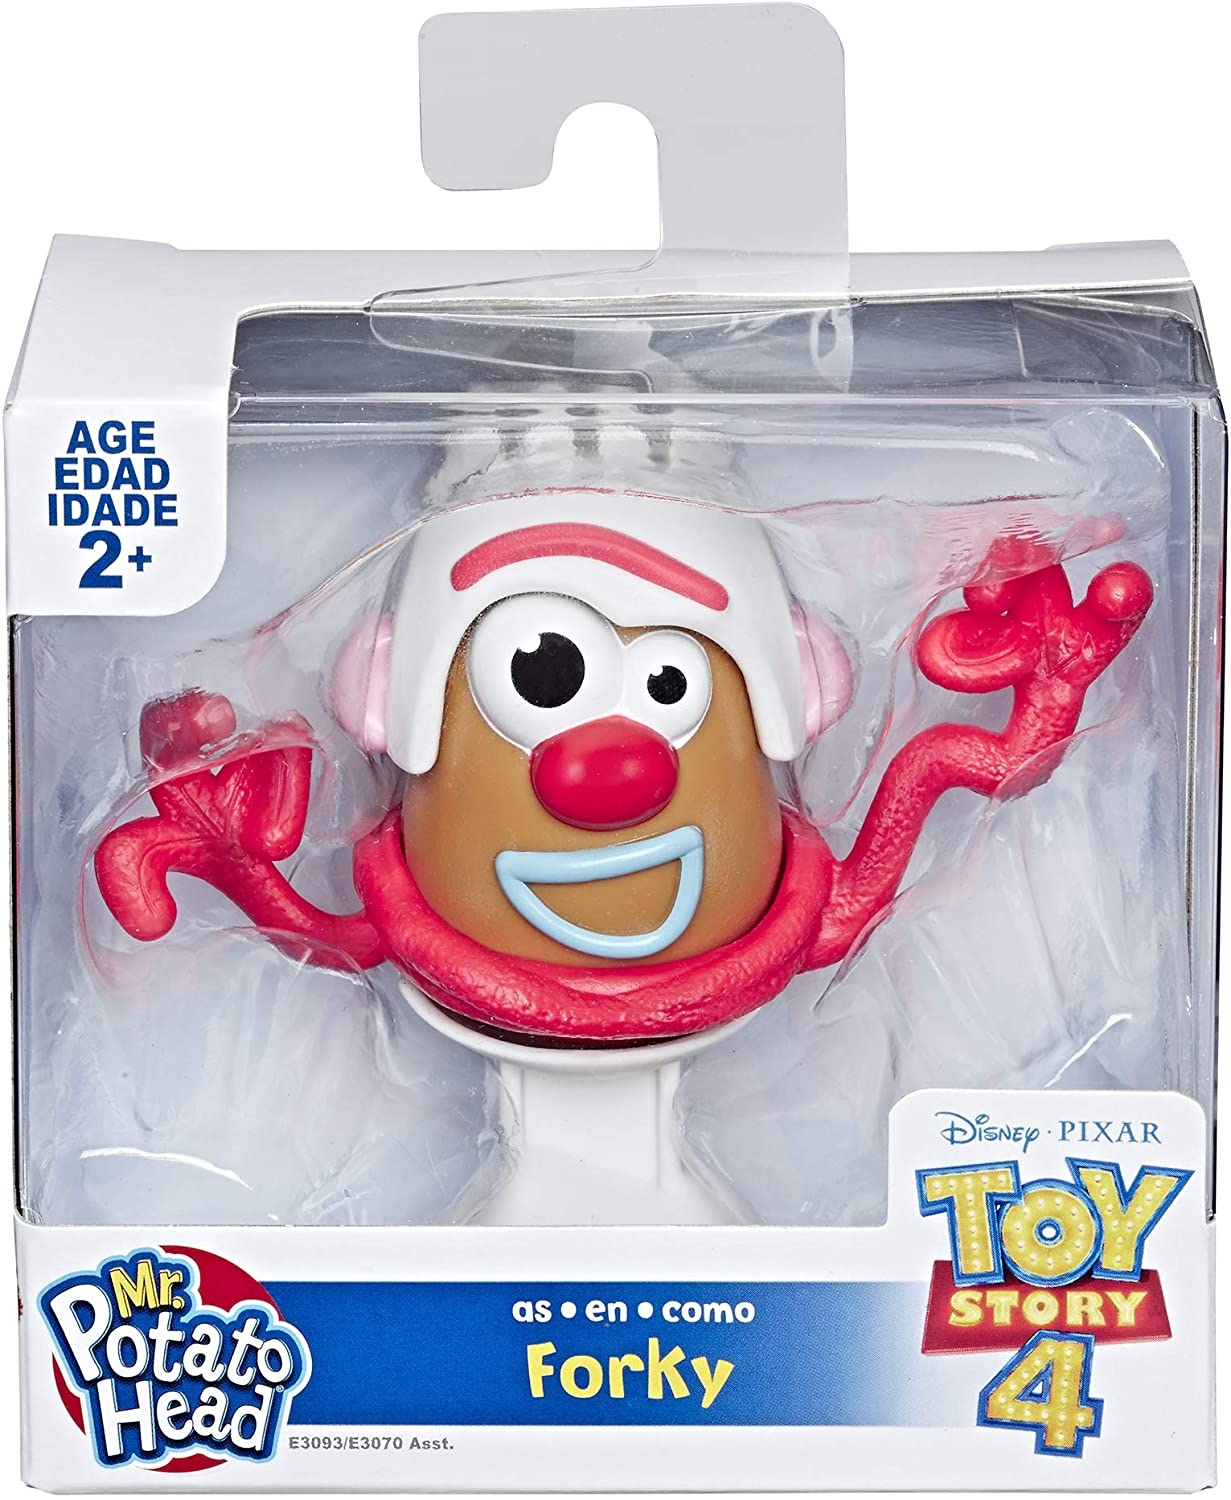 Mr Potato Head Hasbro Toy Story 4 Forky-E3093